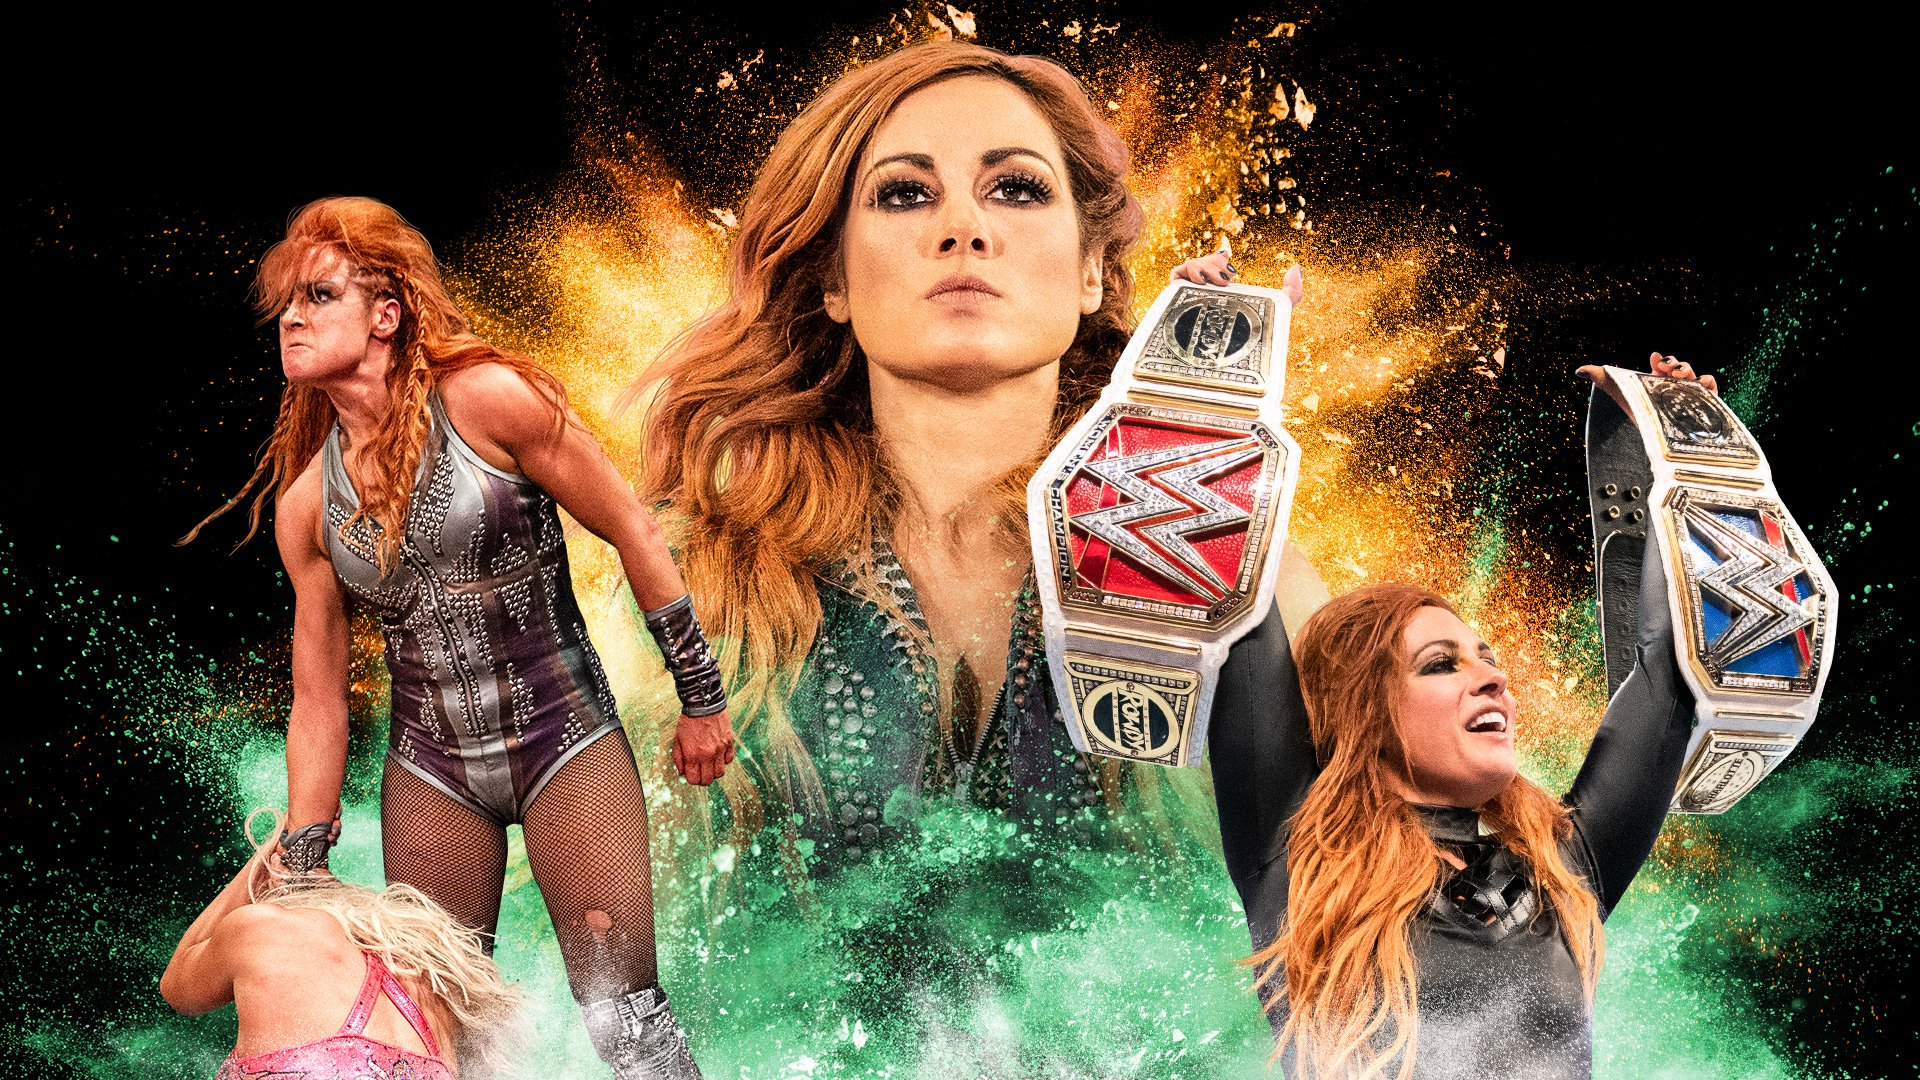 What Is Becky Lynch Wallpaper?